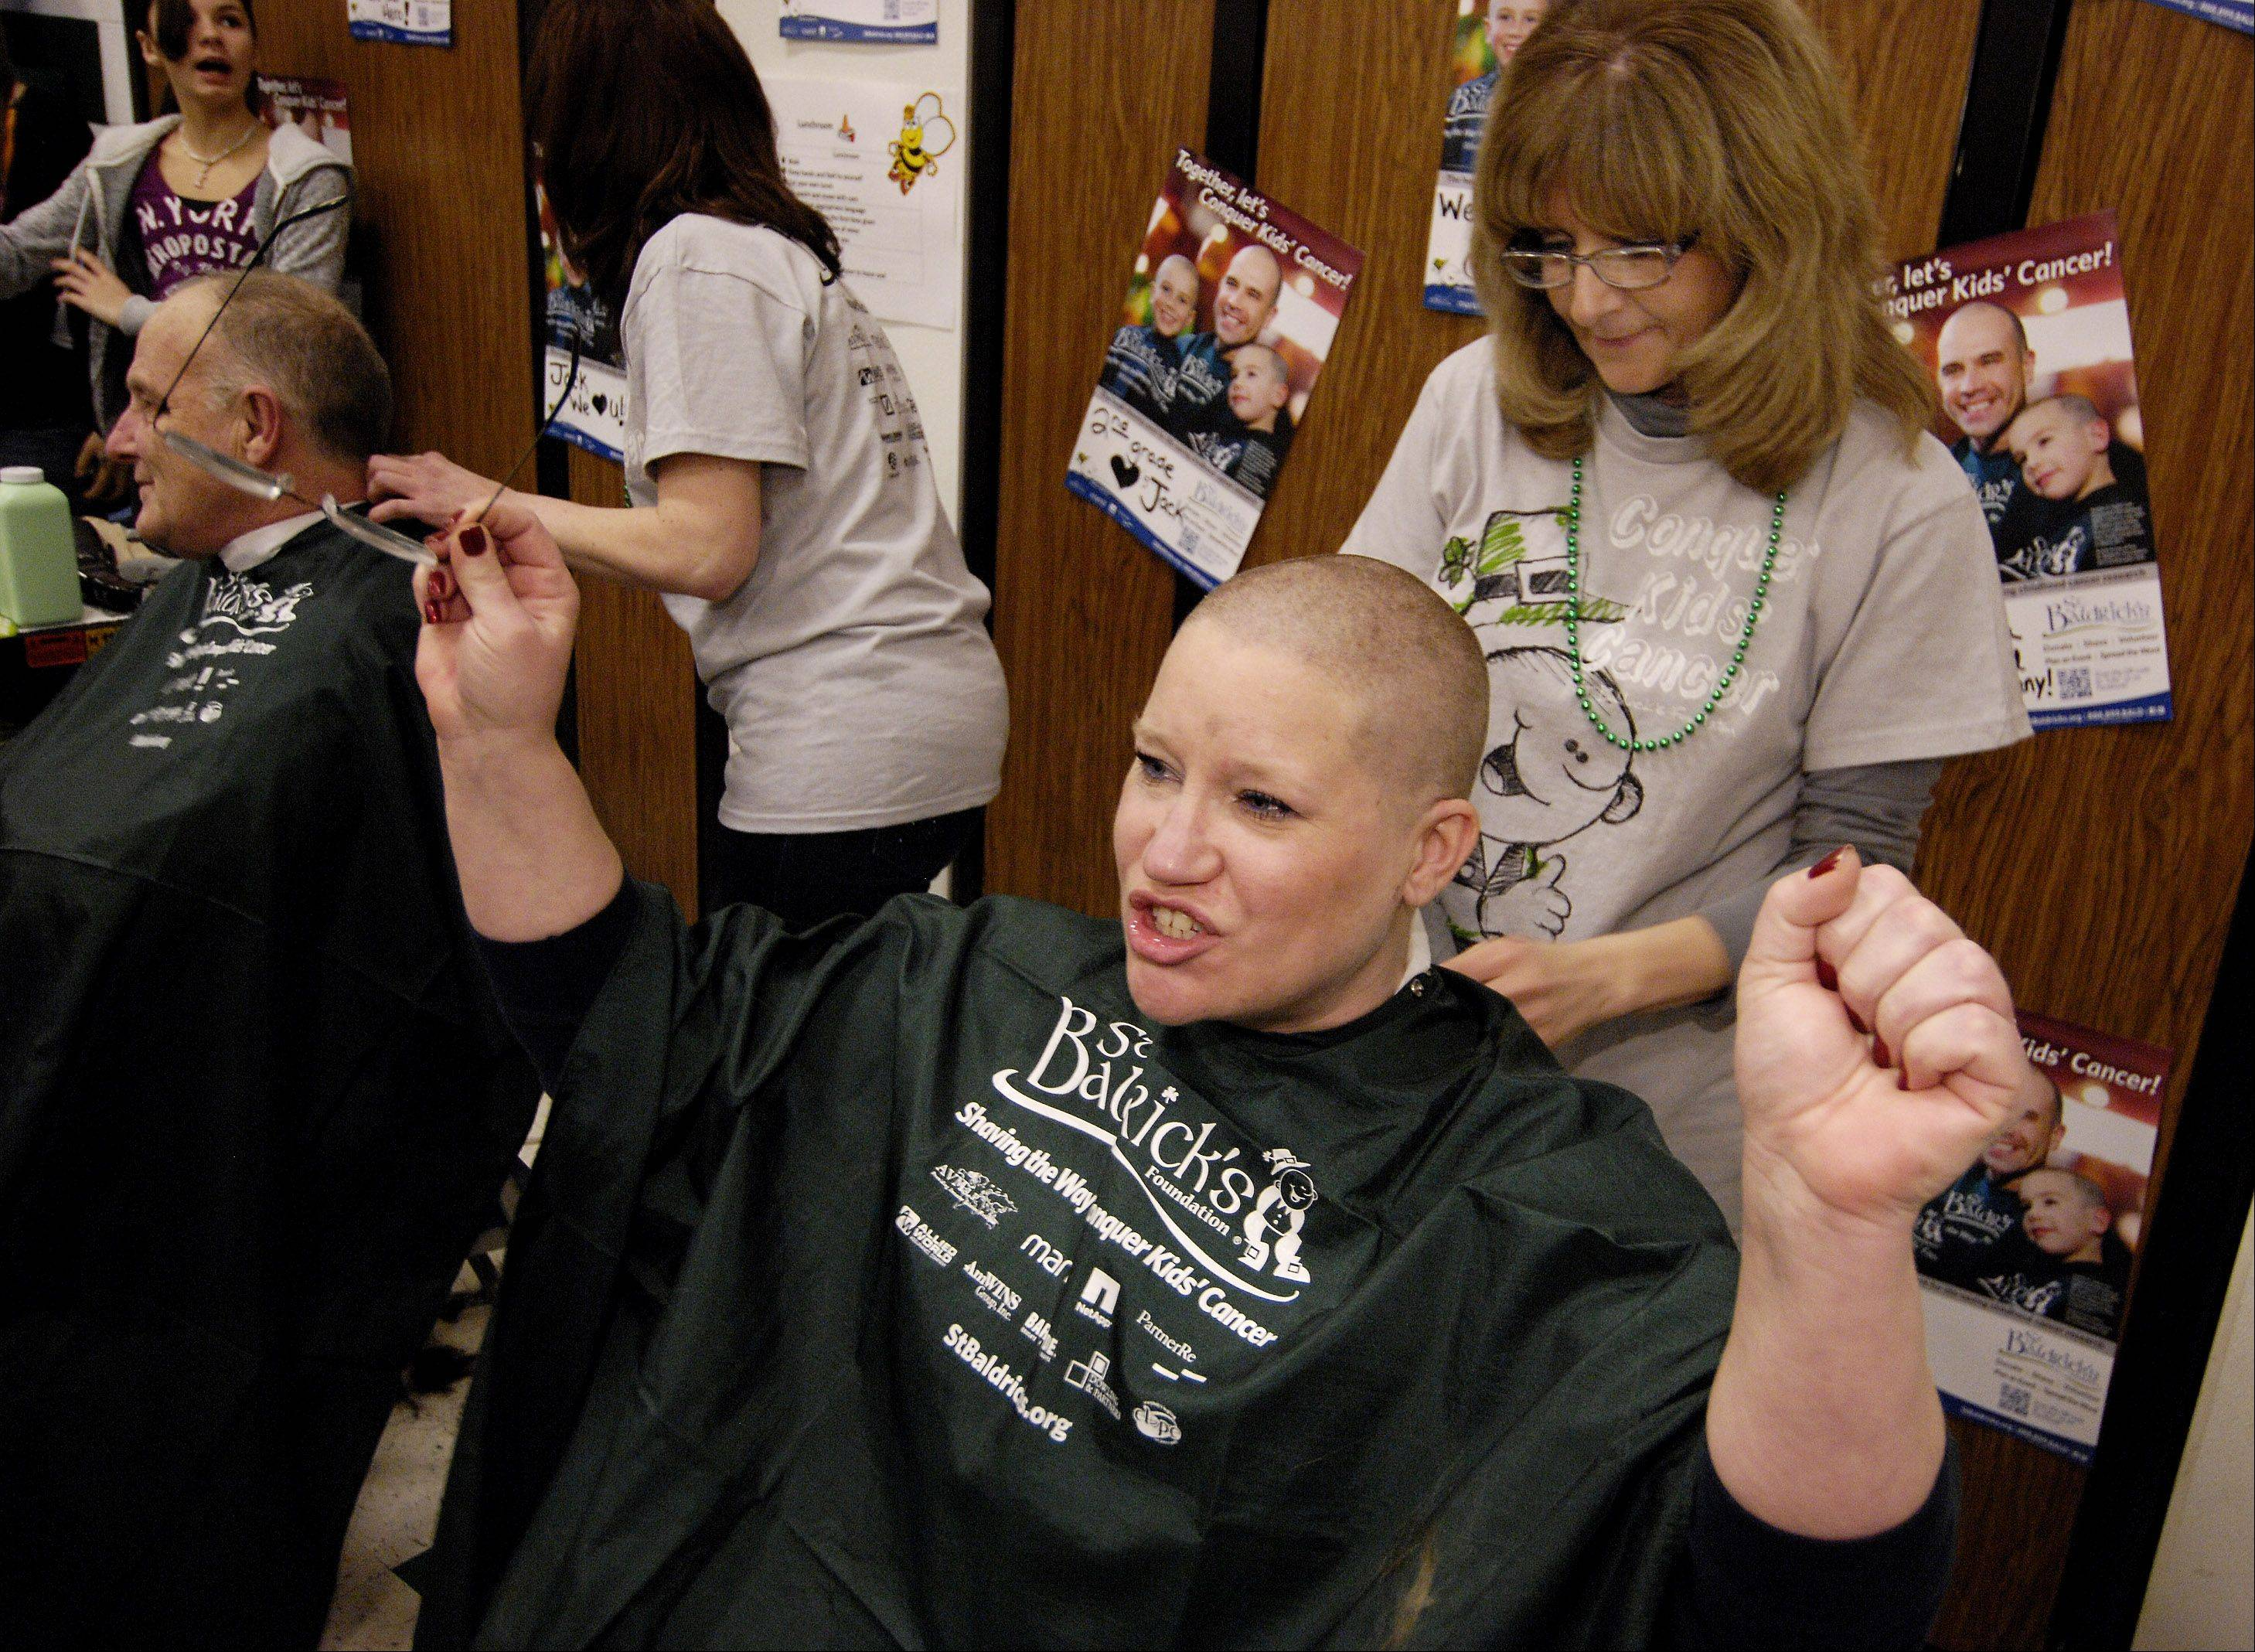 Laurie Evans of Elmhurst celebrates having her head shaved by Karen Monaco, during a St. Baldrick's fundraiser at Evergreen School in Carol Stream, for second grader Jack O'Donoghue who has Burkitt's lymphoma, a non Hodgkin's cancer of the lymphatic system, Sunday.